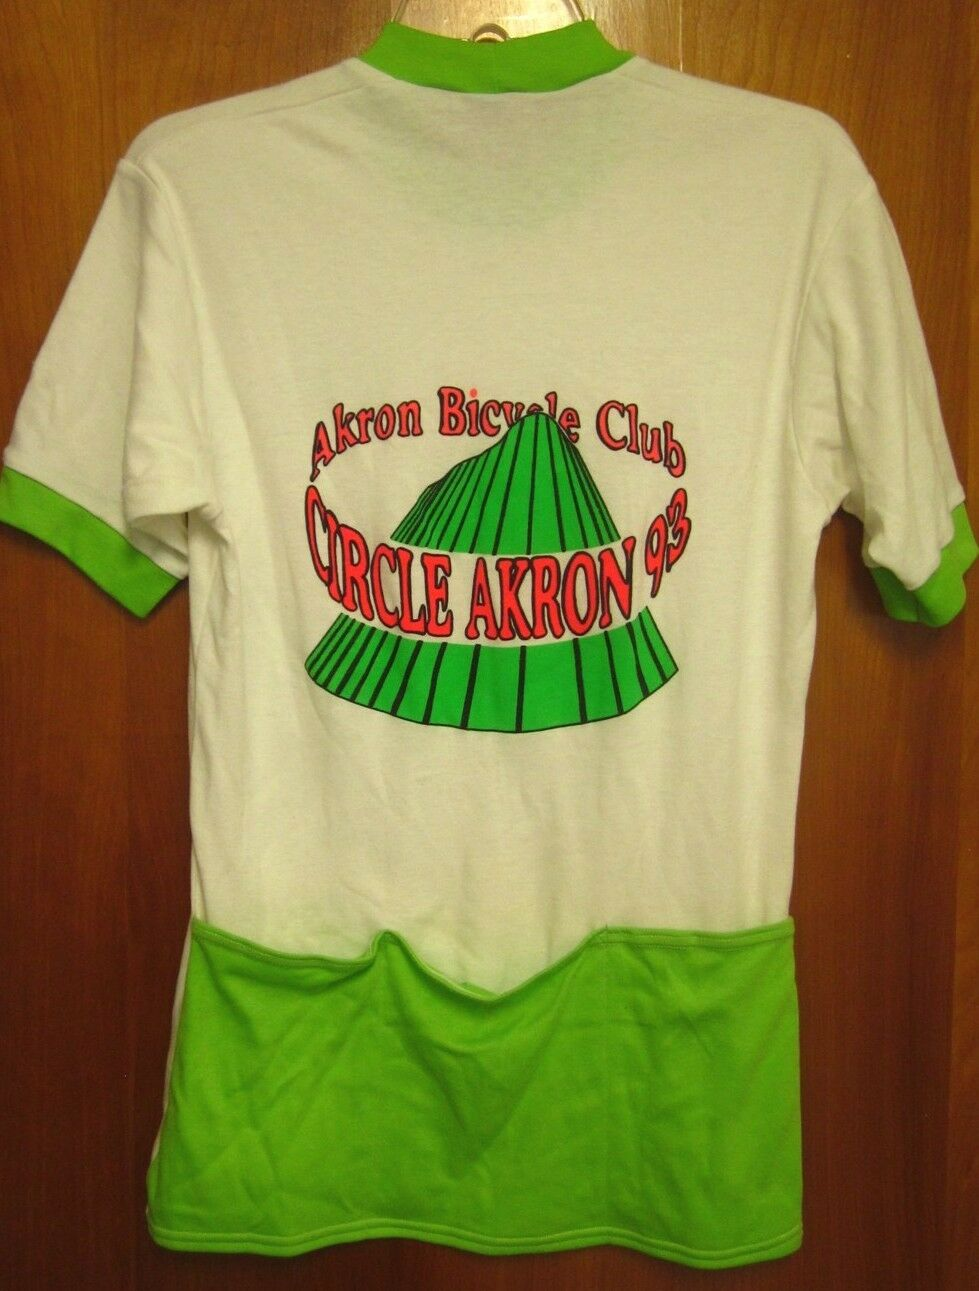 AKRON BICYCLE CLUB small cycling jersey Circle Akron 1993 dayglo tee Ohio ABC